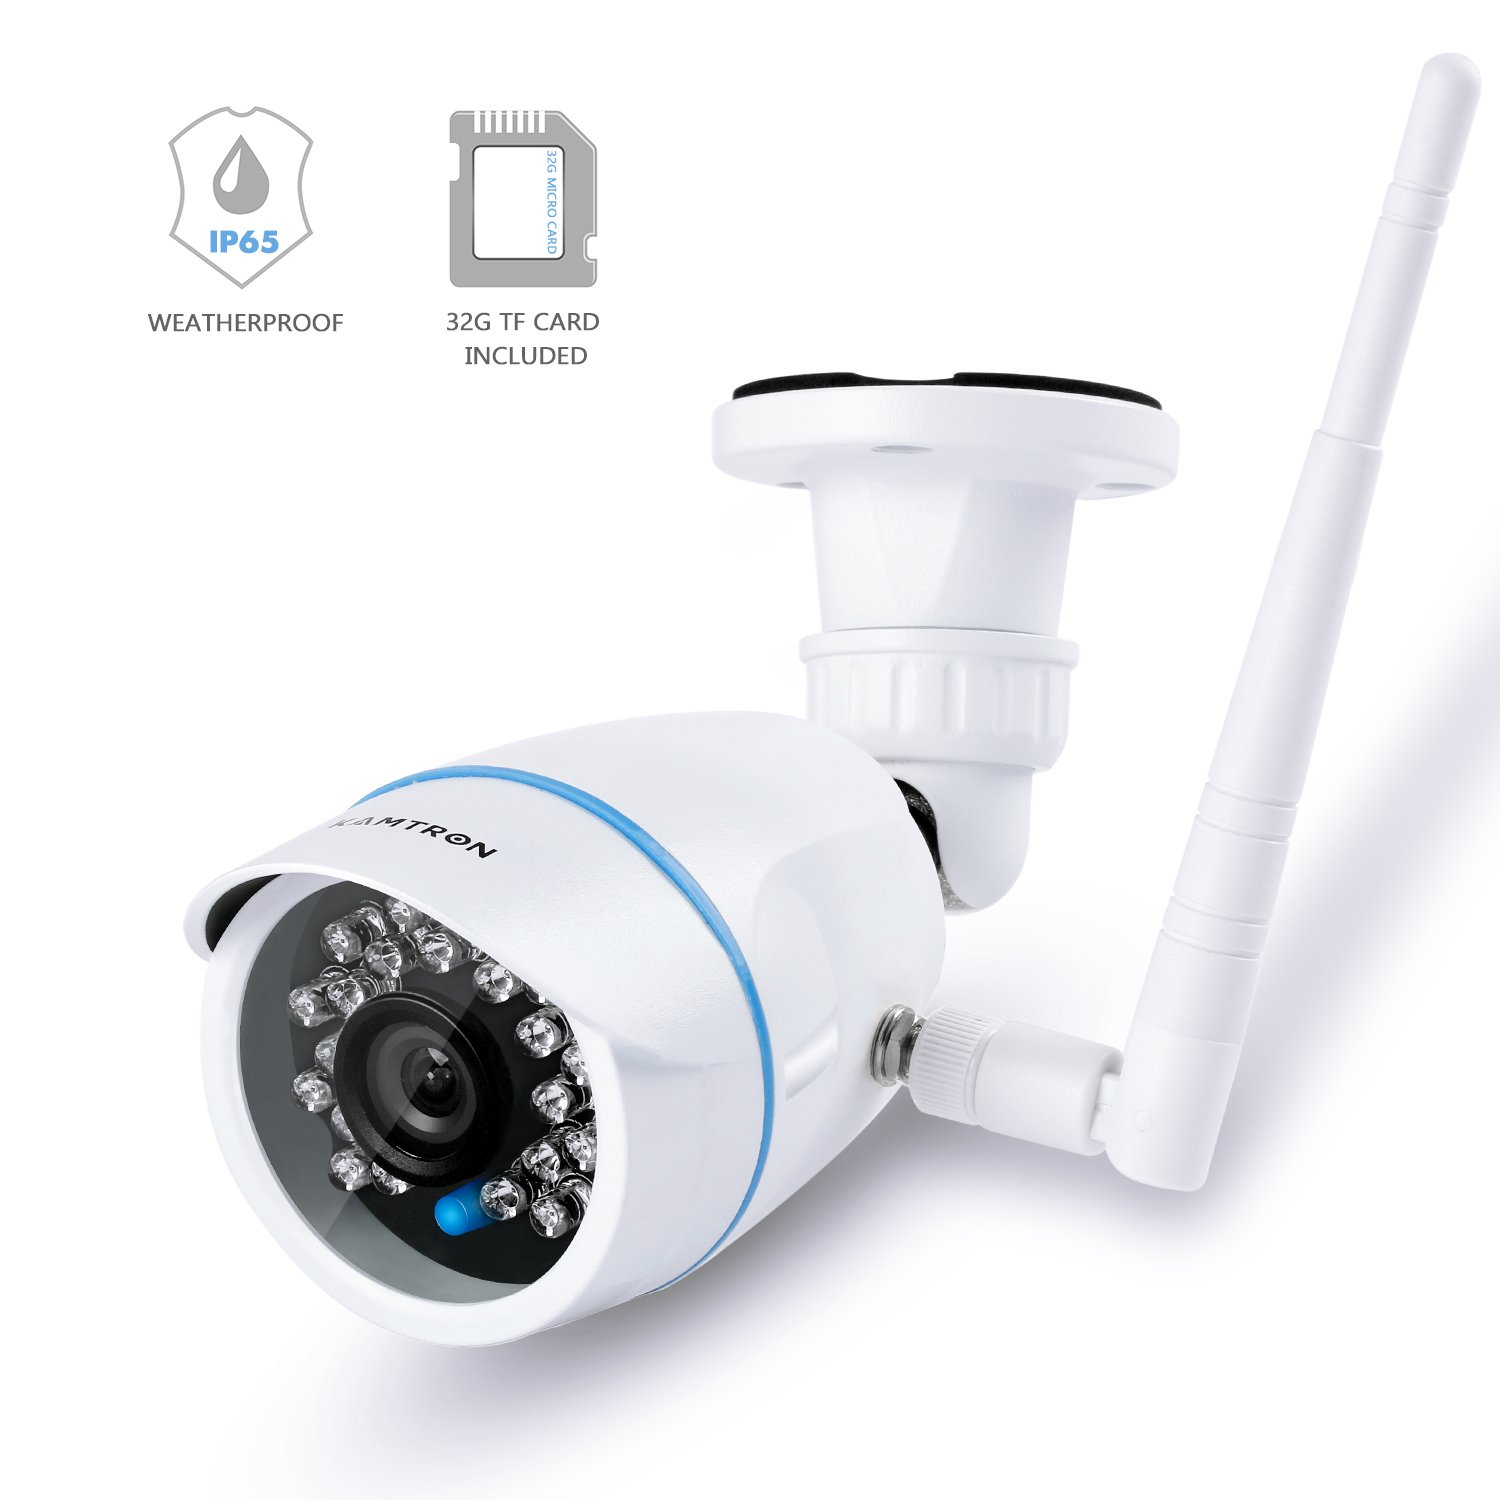 KAMTRON Wireless Security Camera,Outdoor WiFi Surveillance Camera for Home 32G TF Card Included IP65 Weatherproof